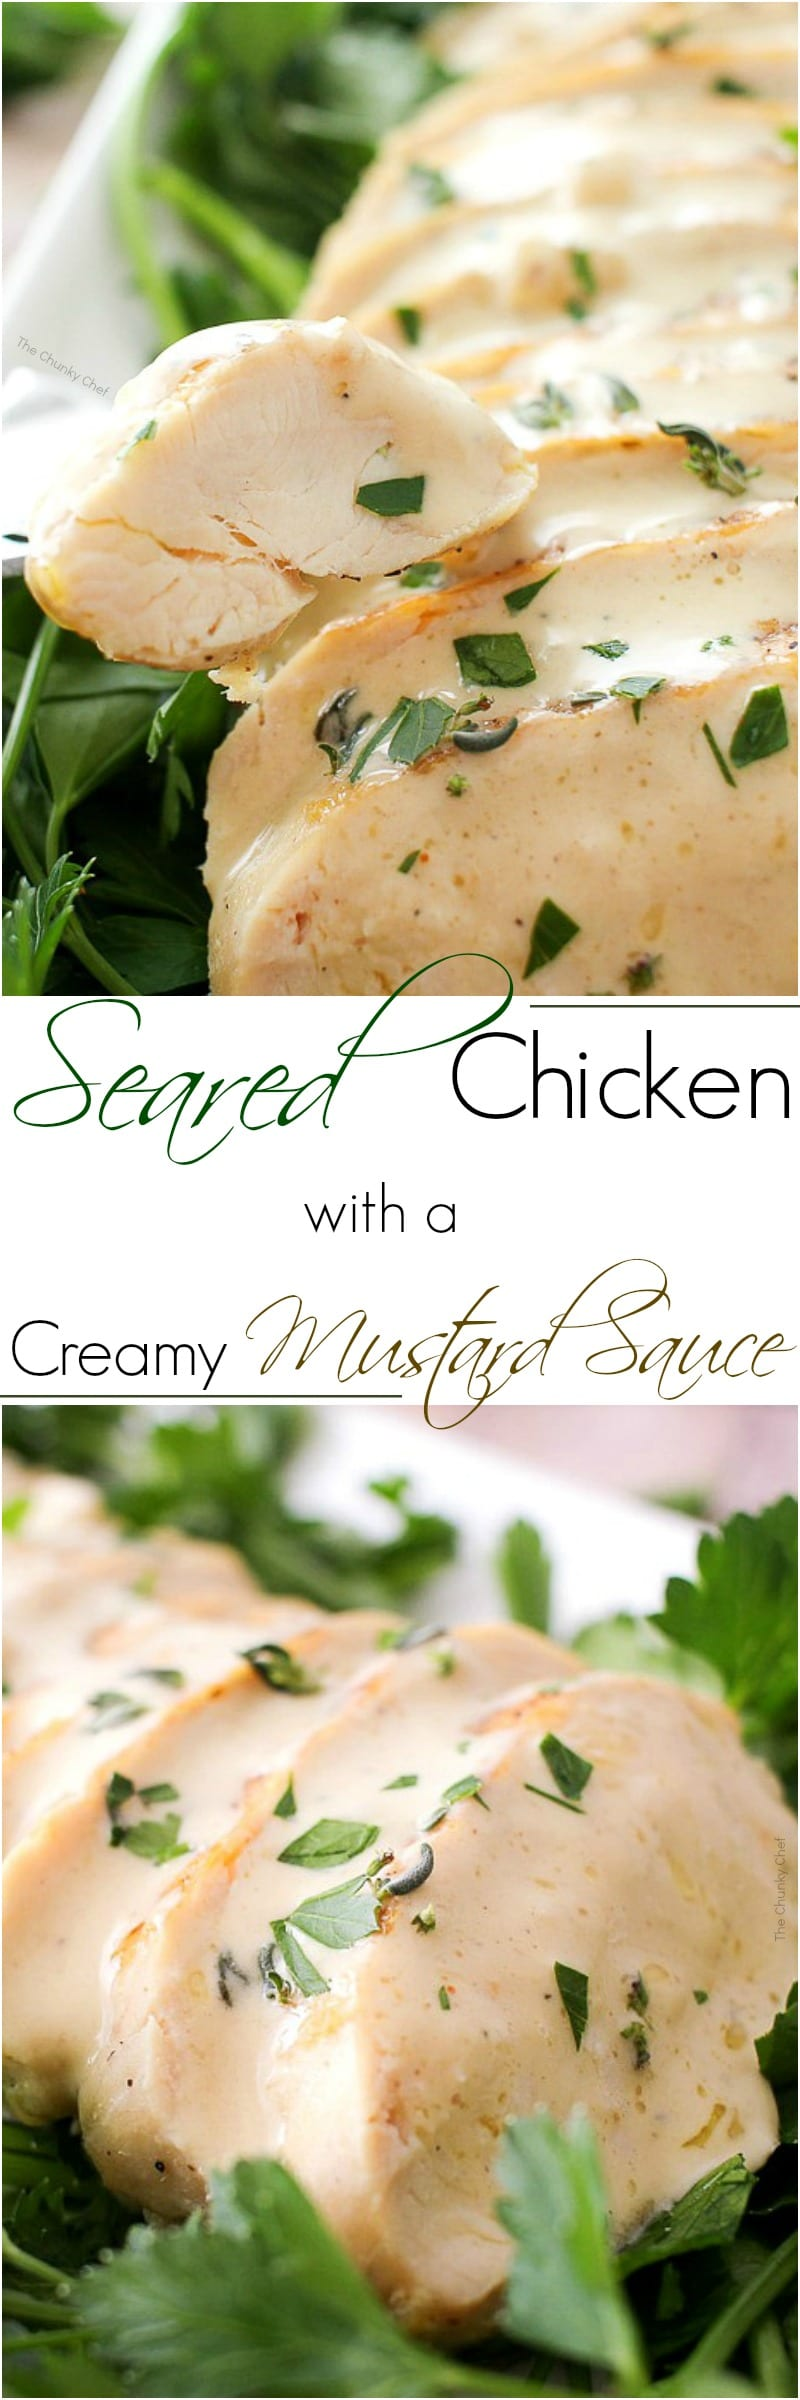 If you're looking for a recipe to switch up your chicken routine, try this pan seared chicken with a creamy mustard sauce!  Simple. Easy. Flavorful!